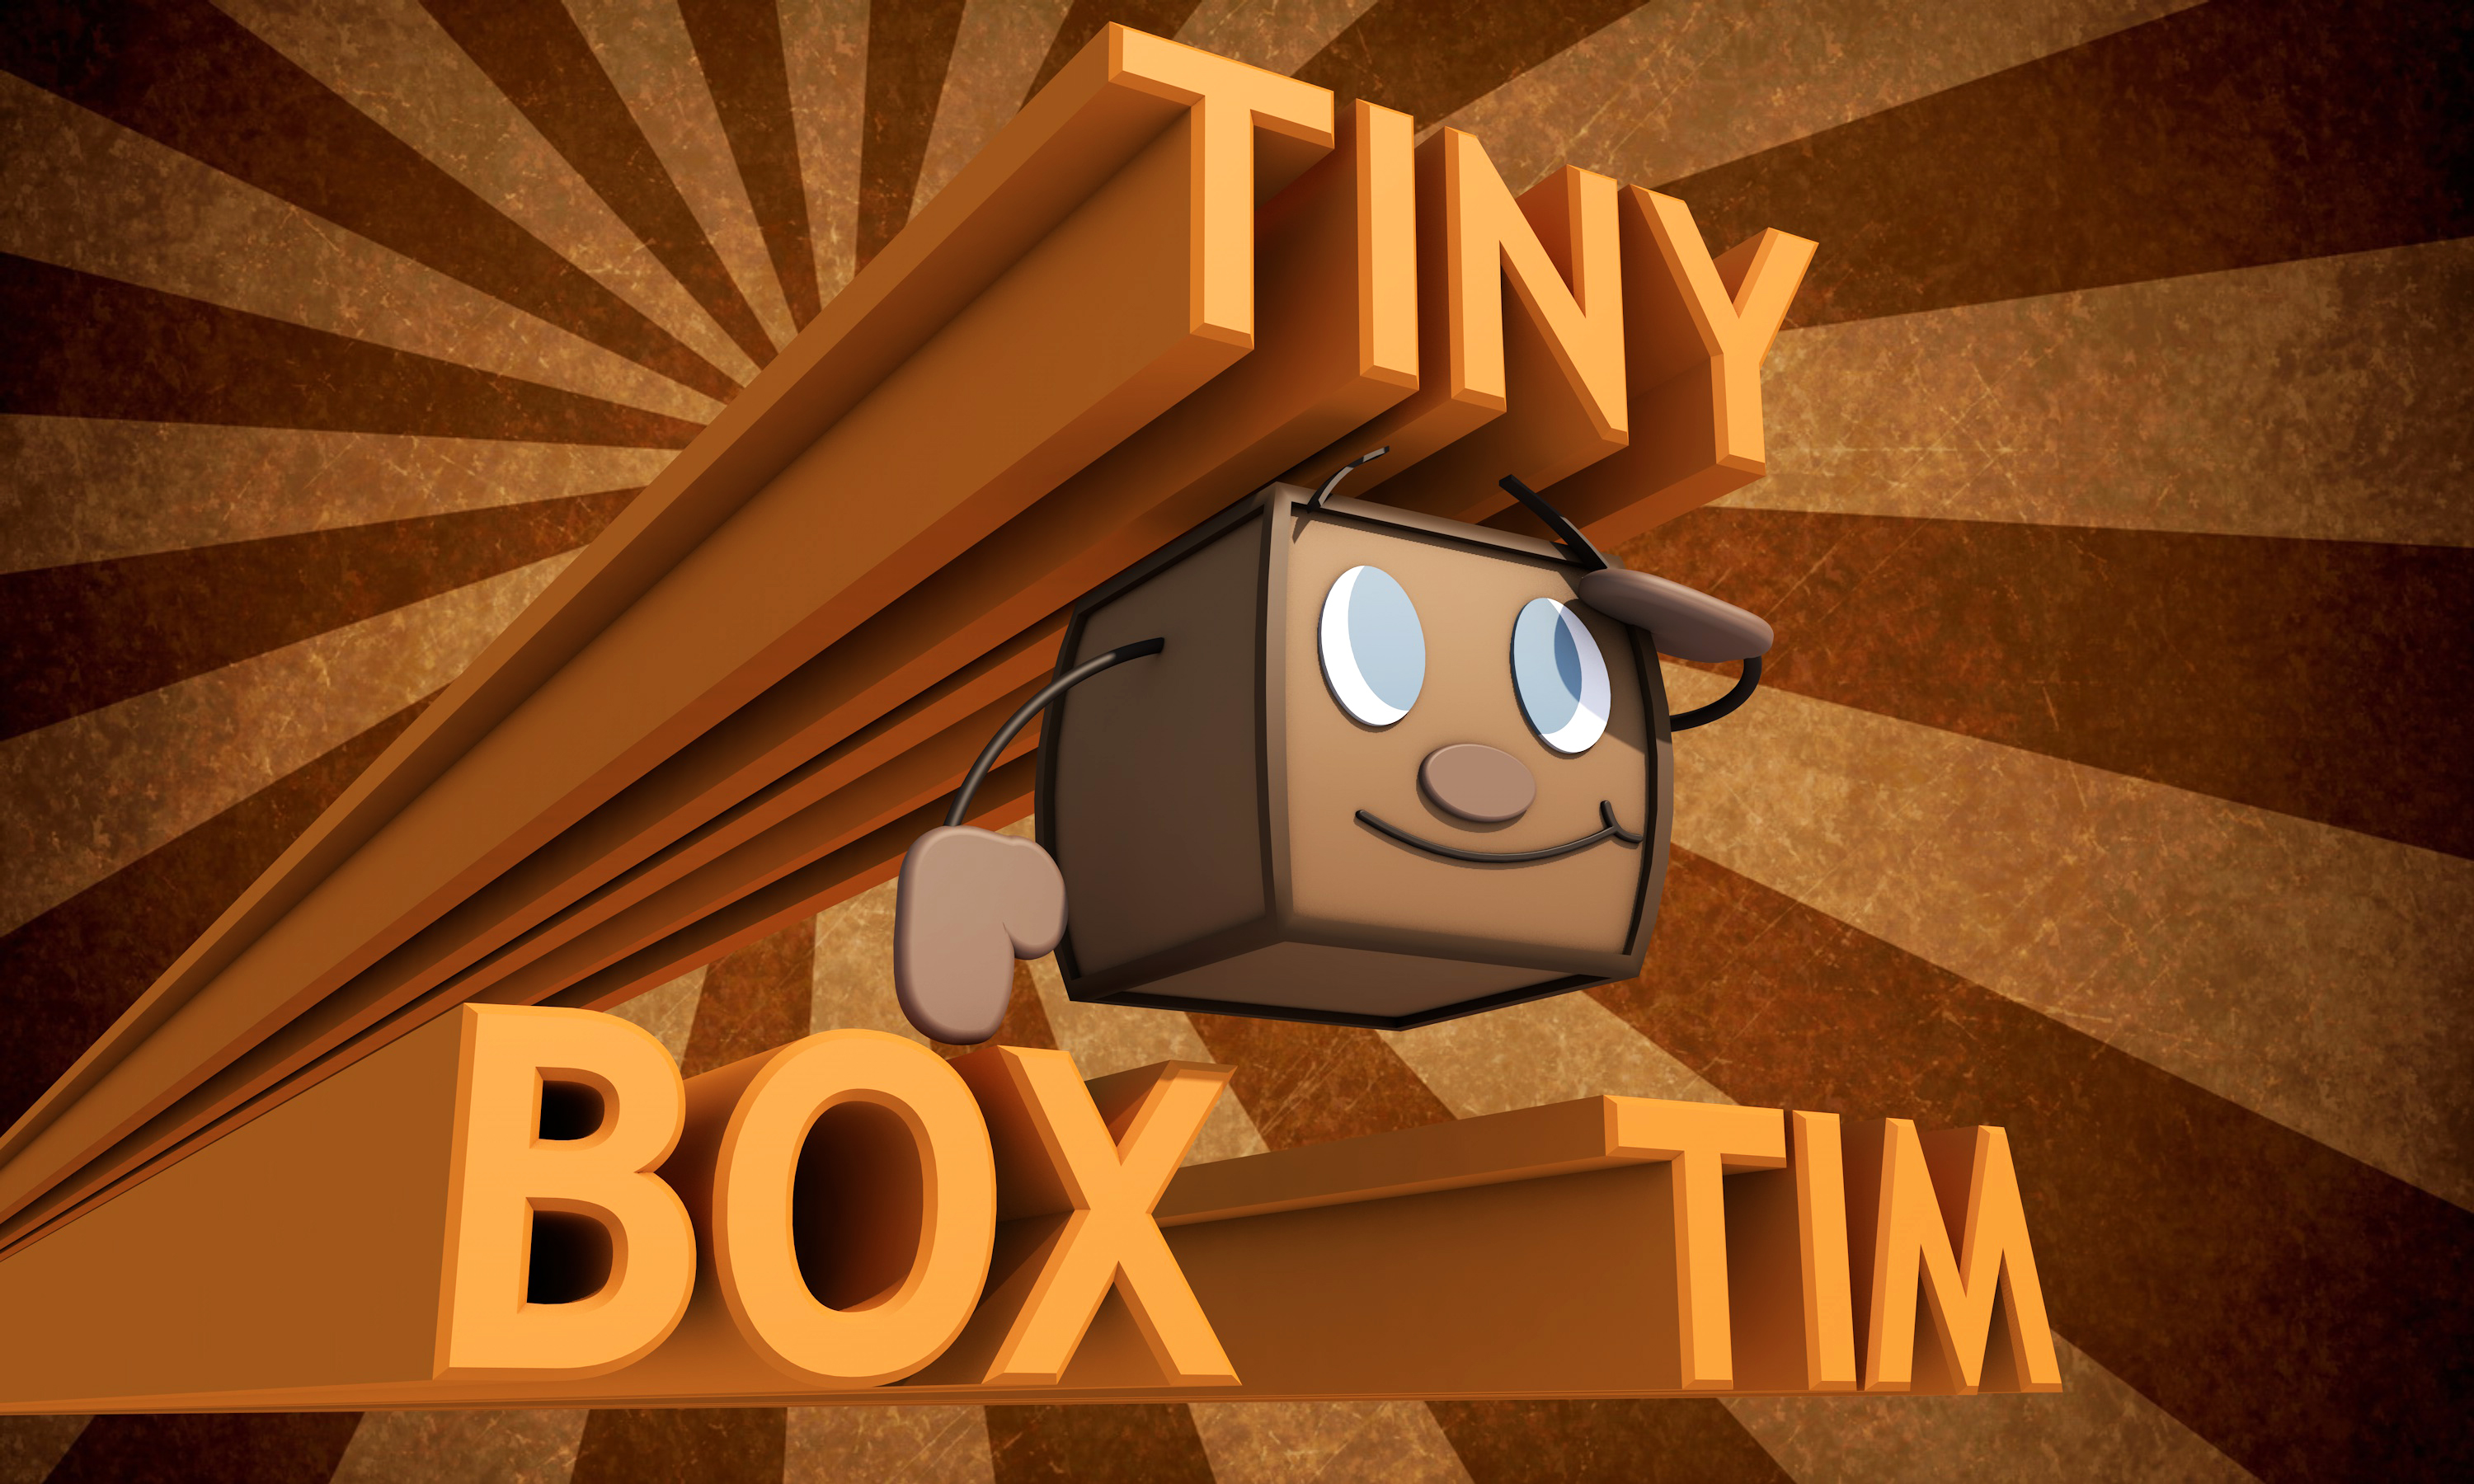 Markiplier's Tiny Box Tim by tiberius121212